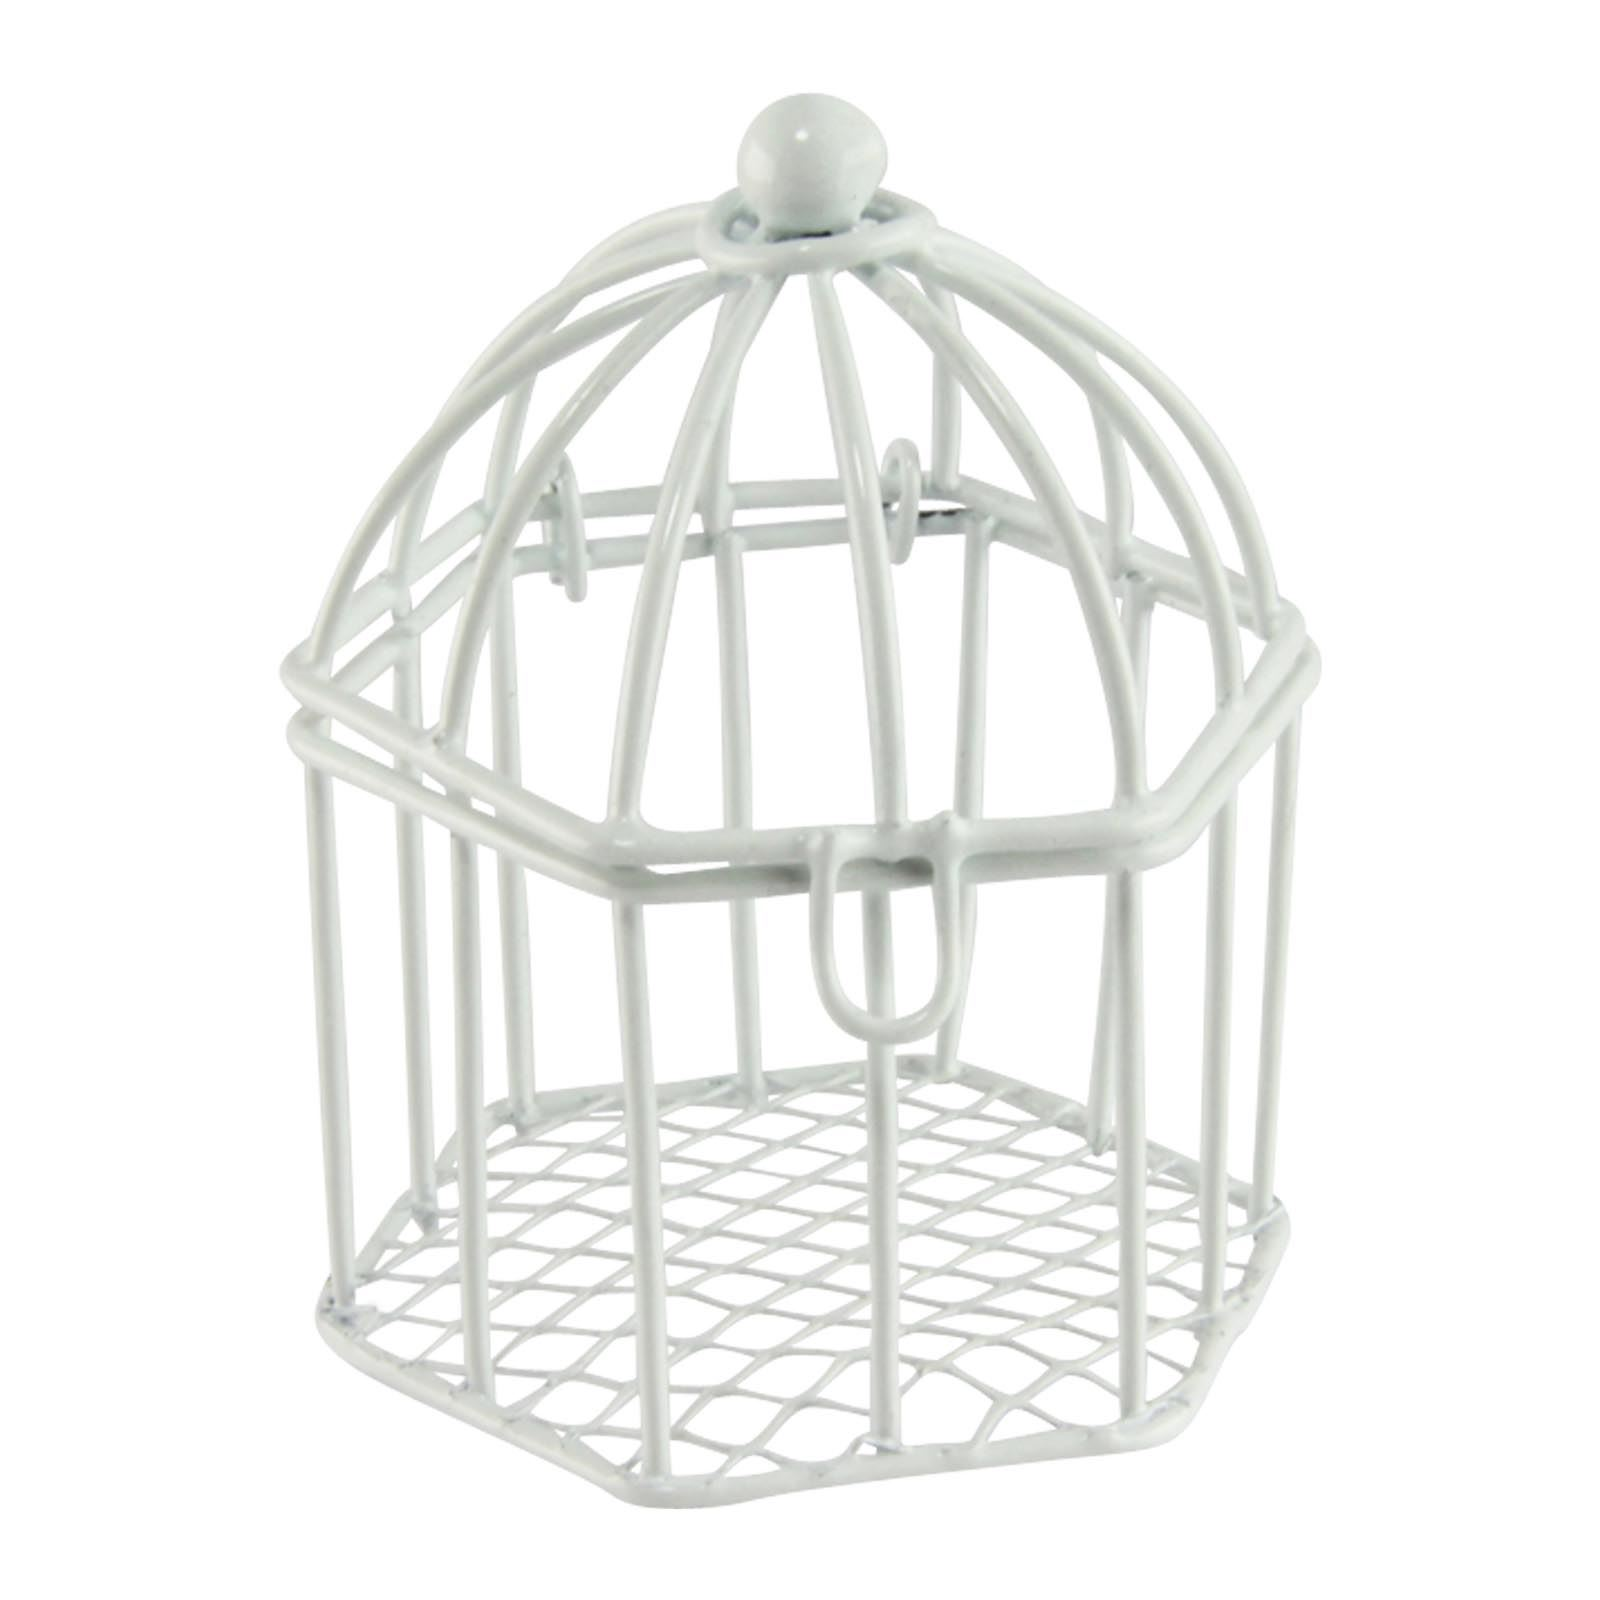 Mini Favour Bird Cages for Weddings in Ivory or White